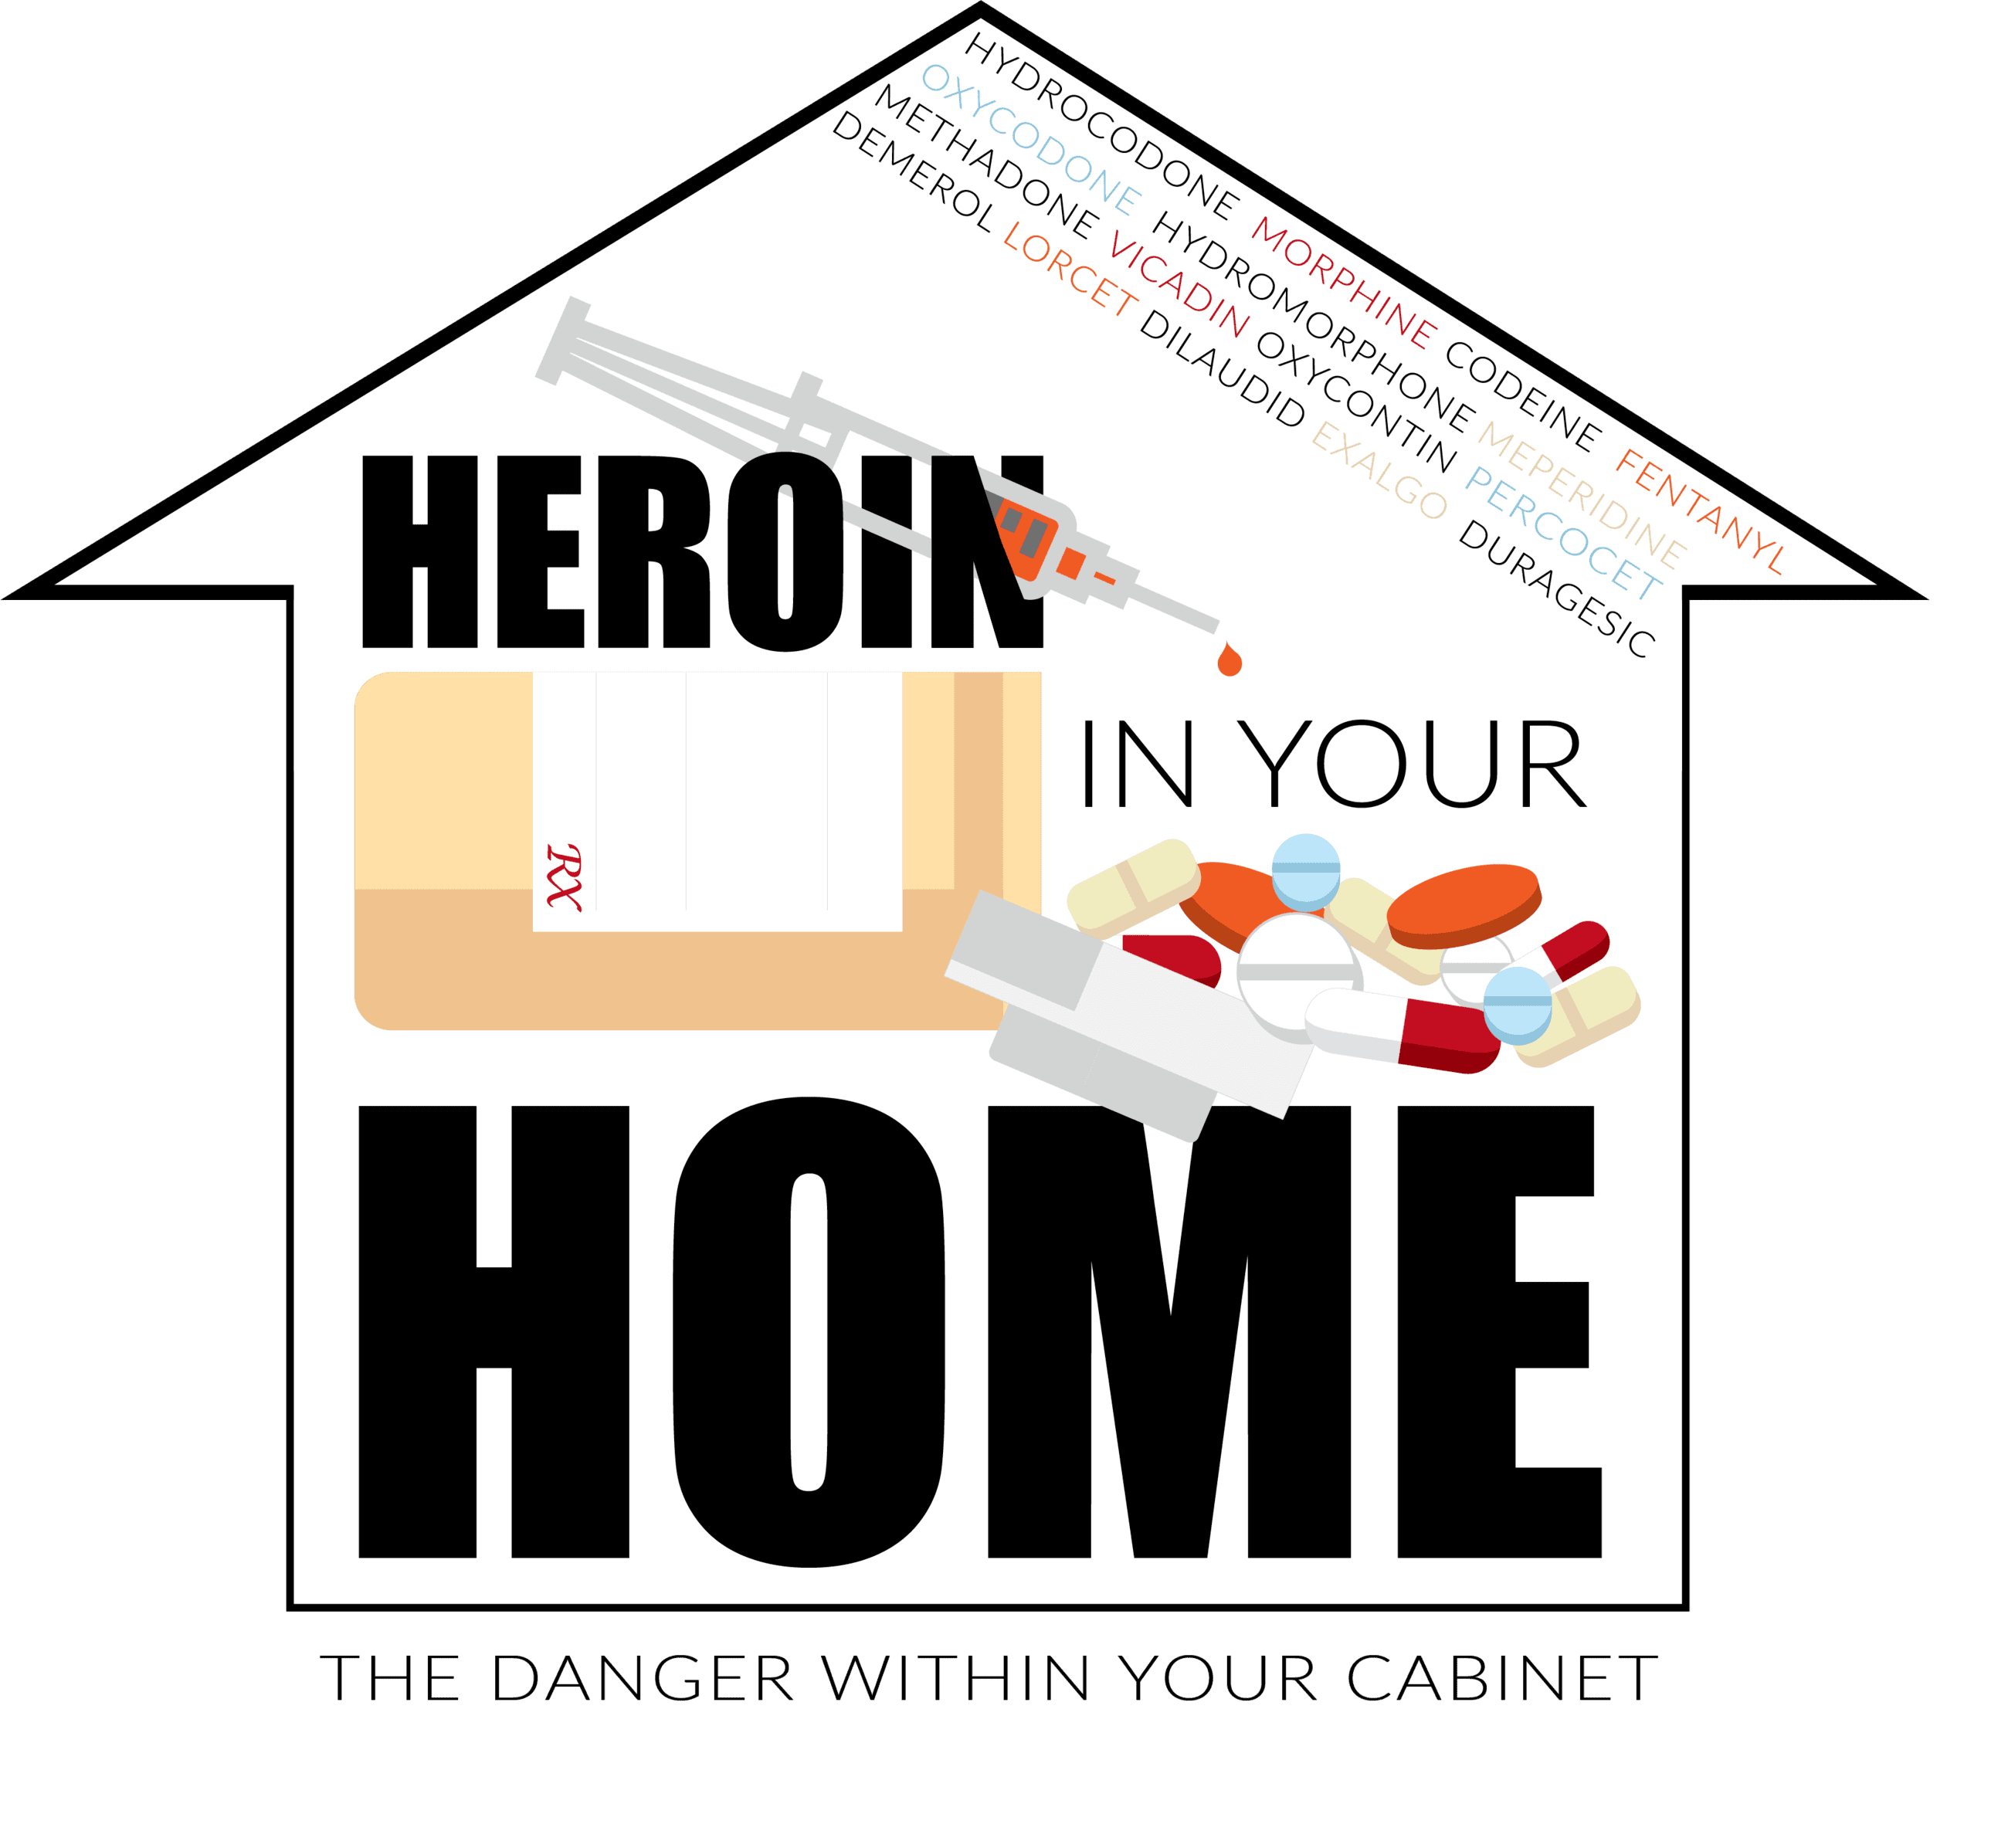 HEROIN IN YOUR HOME LOGO